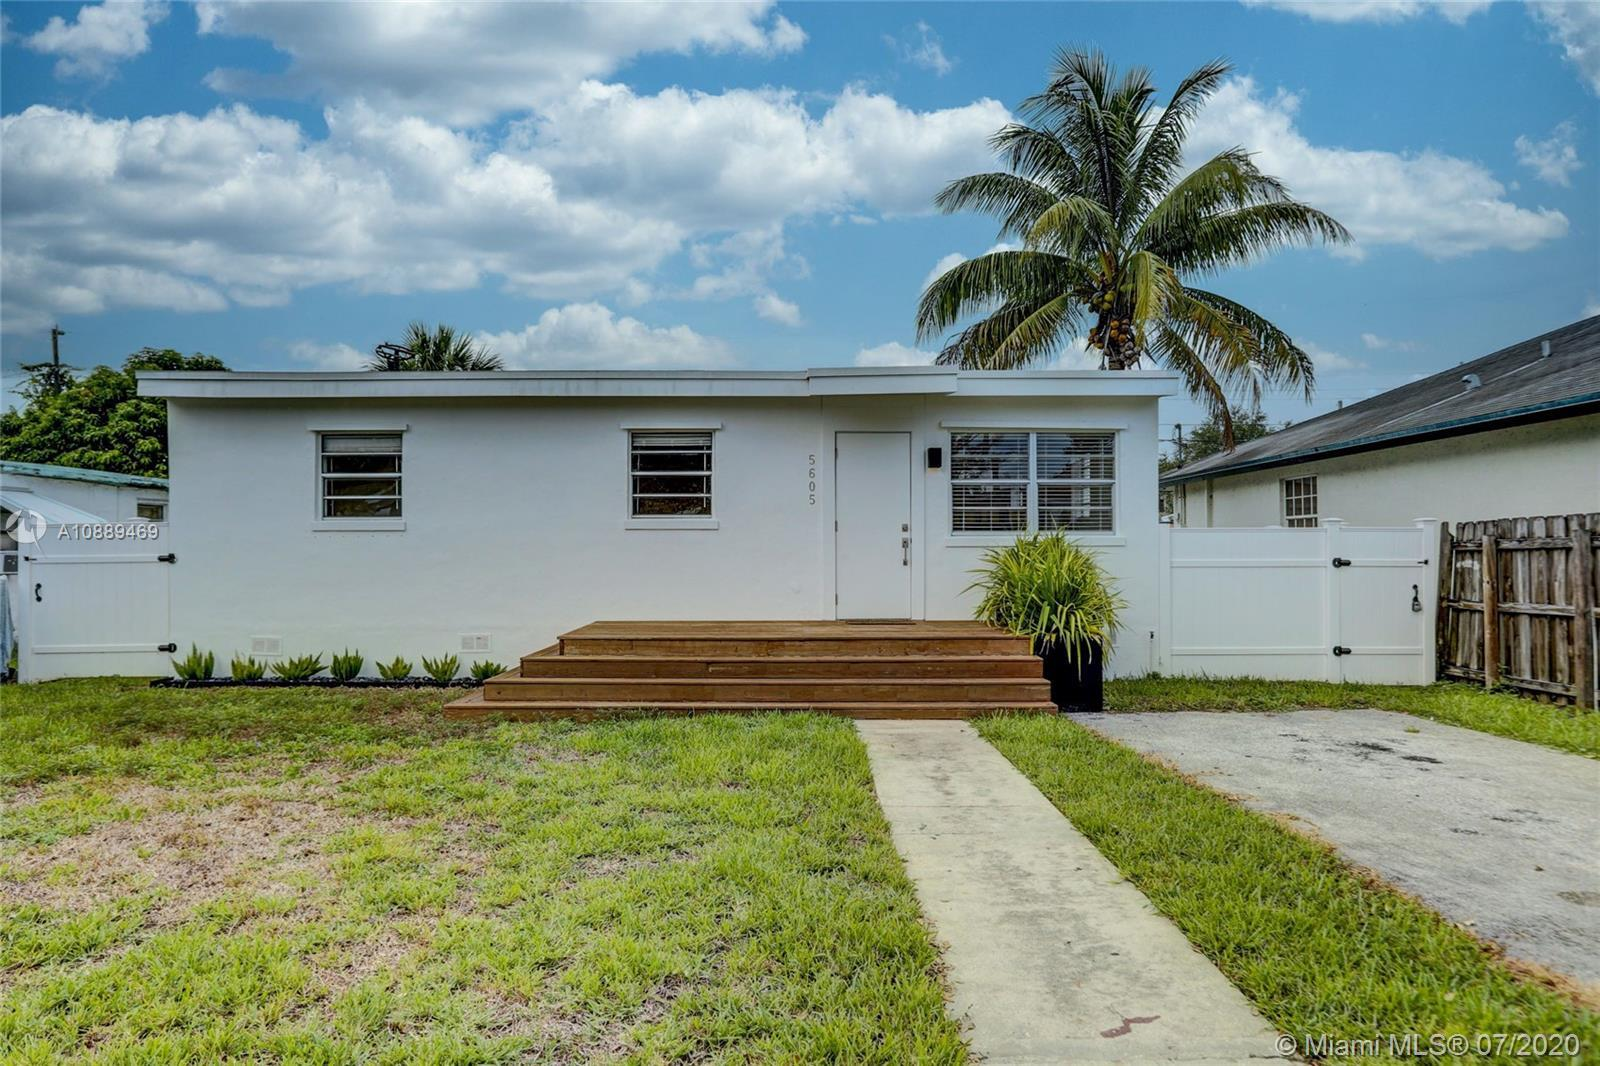 Your beautifully & tastefully updated, completely renovated 3 bedroom, 2 full bath home awaits! Feat